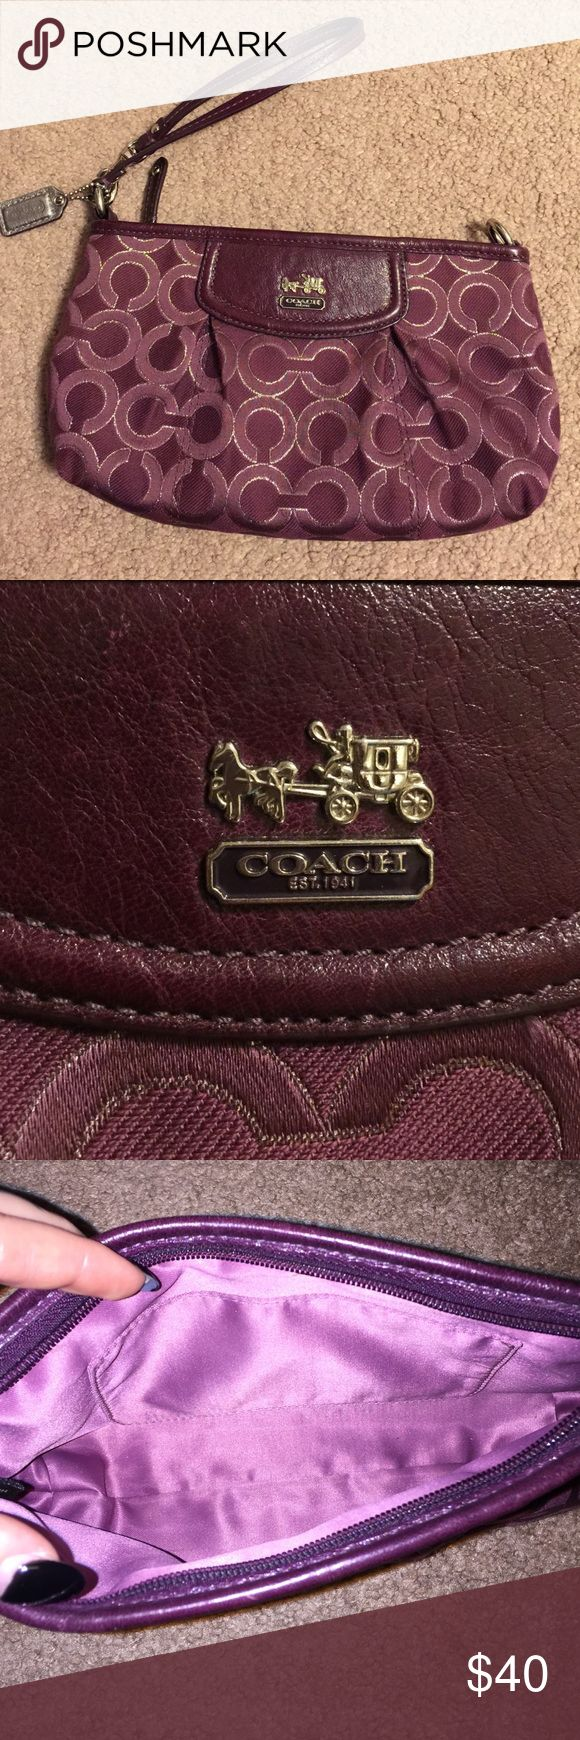 Authentic Coach clutch/wristlet Super cute and clean authentic Coach clutch/wristlet, plum purple and silver. Coach Bags Clutches & Wristlets